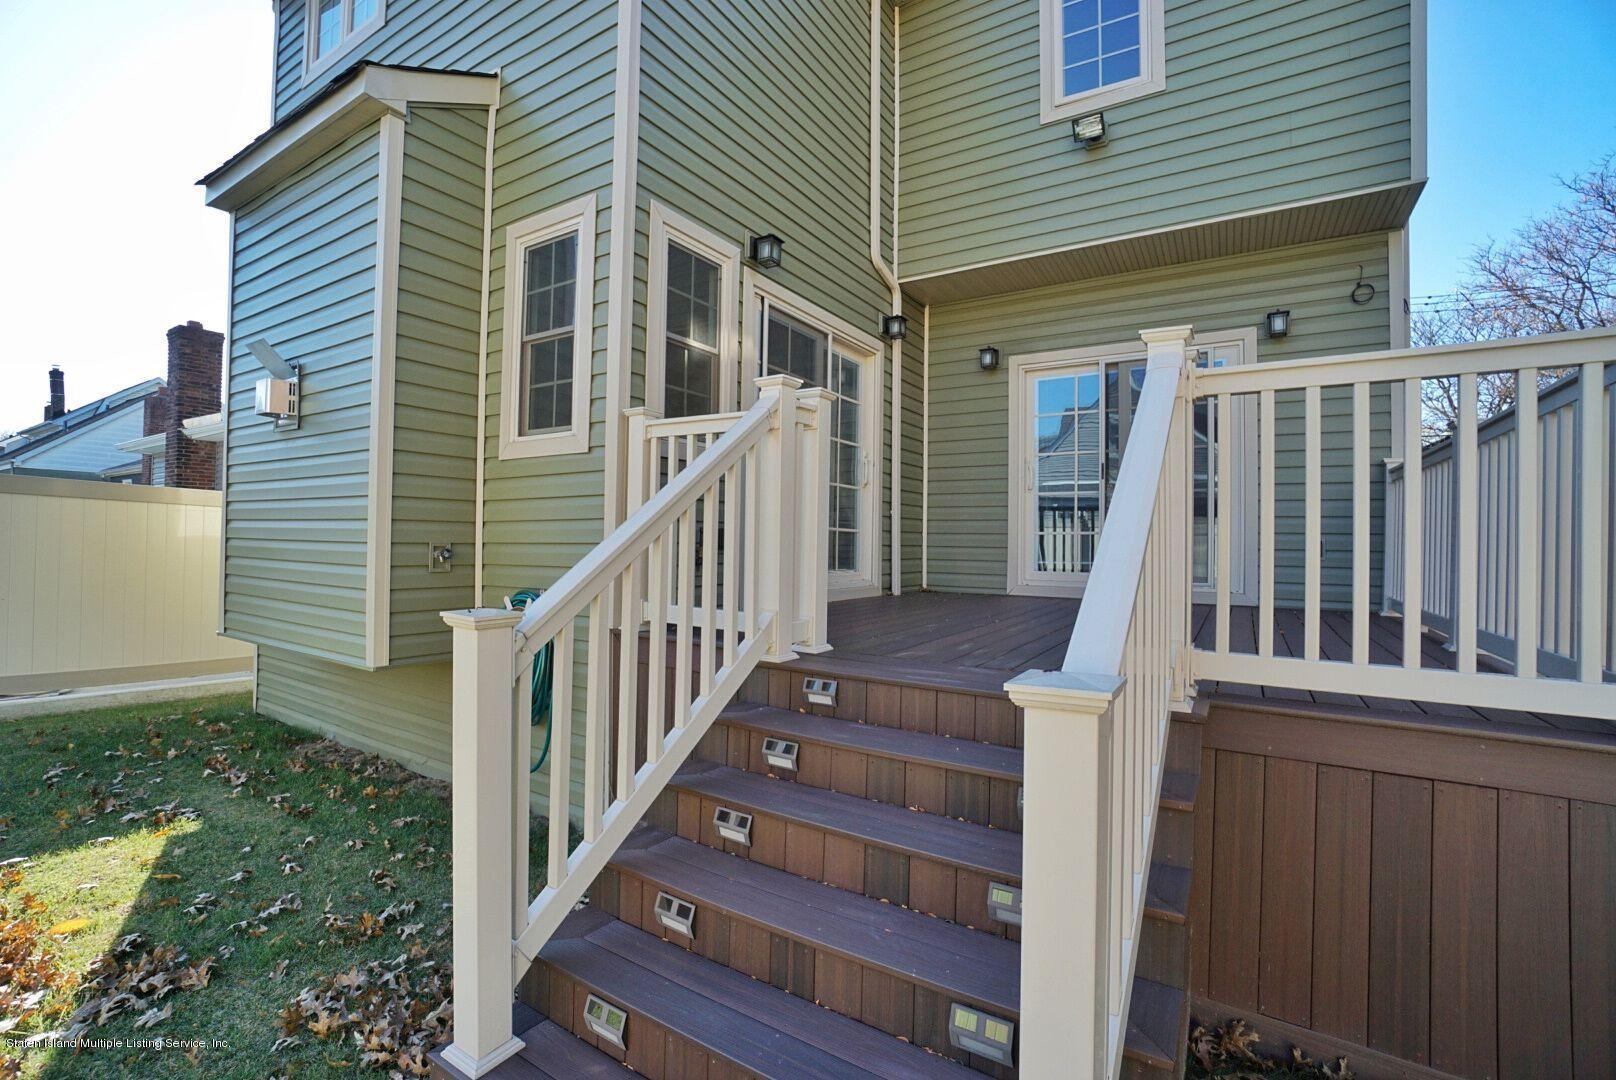 Single Family - Detached 165 Woolley Avenue  Staten Island, NY 10314, MLS-1128875-9